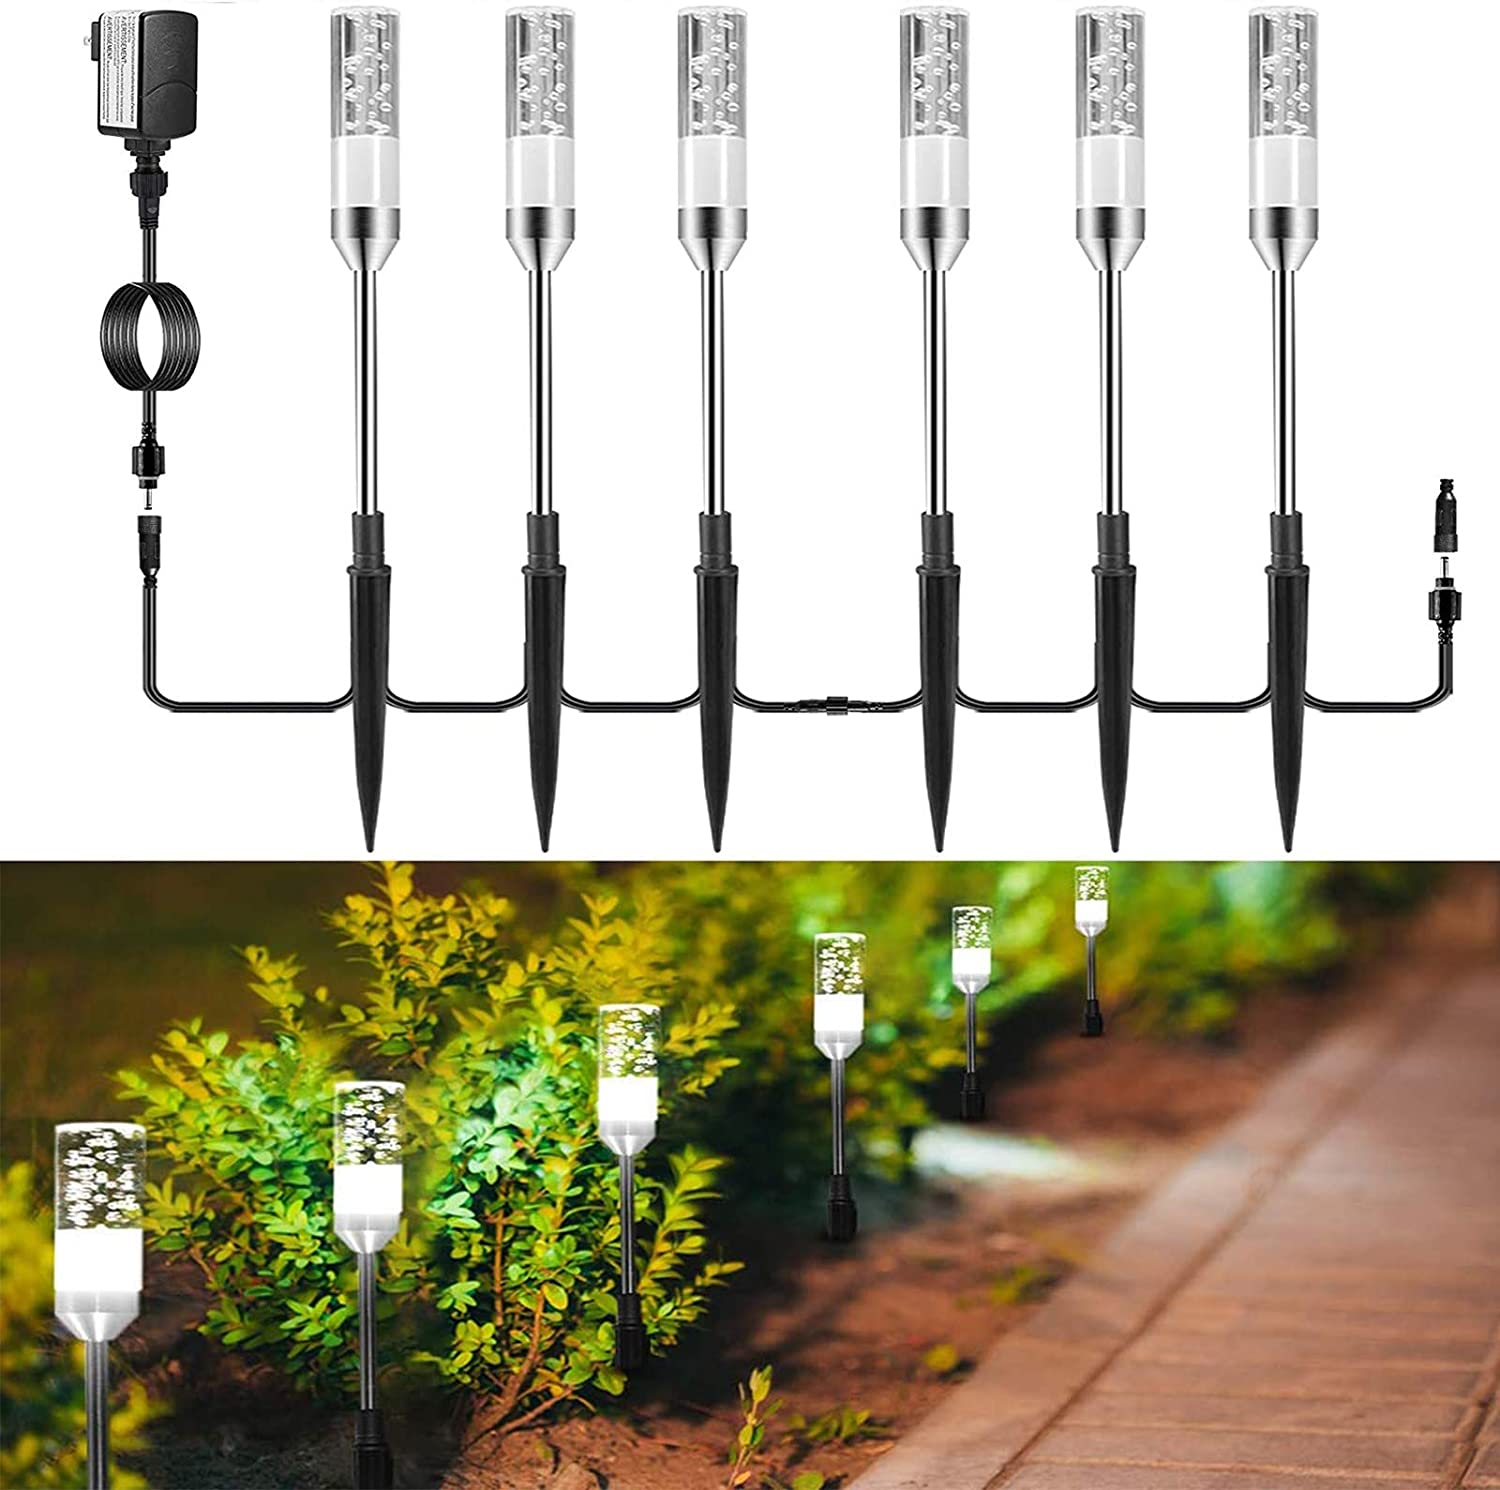 GreenClick Pathway Lights Outdoor, 6 Pack Extendable LED Path Lights Acrylic Bubble Garden Lights 12V Low Voltage Waterproof Landscape Lighting Cold White for Lawn Yard Walkway Driveway, 6000K